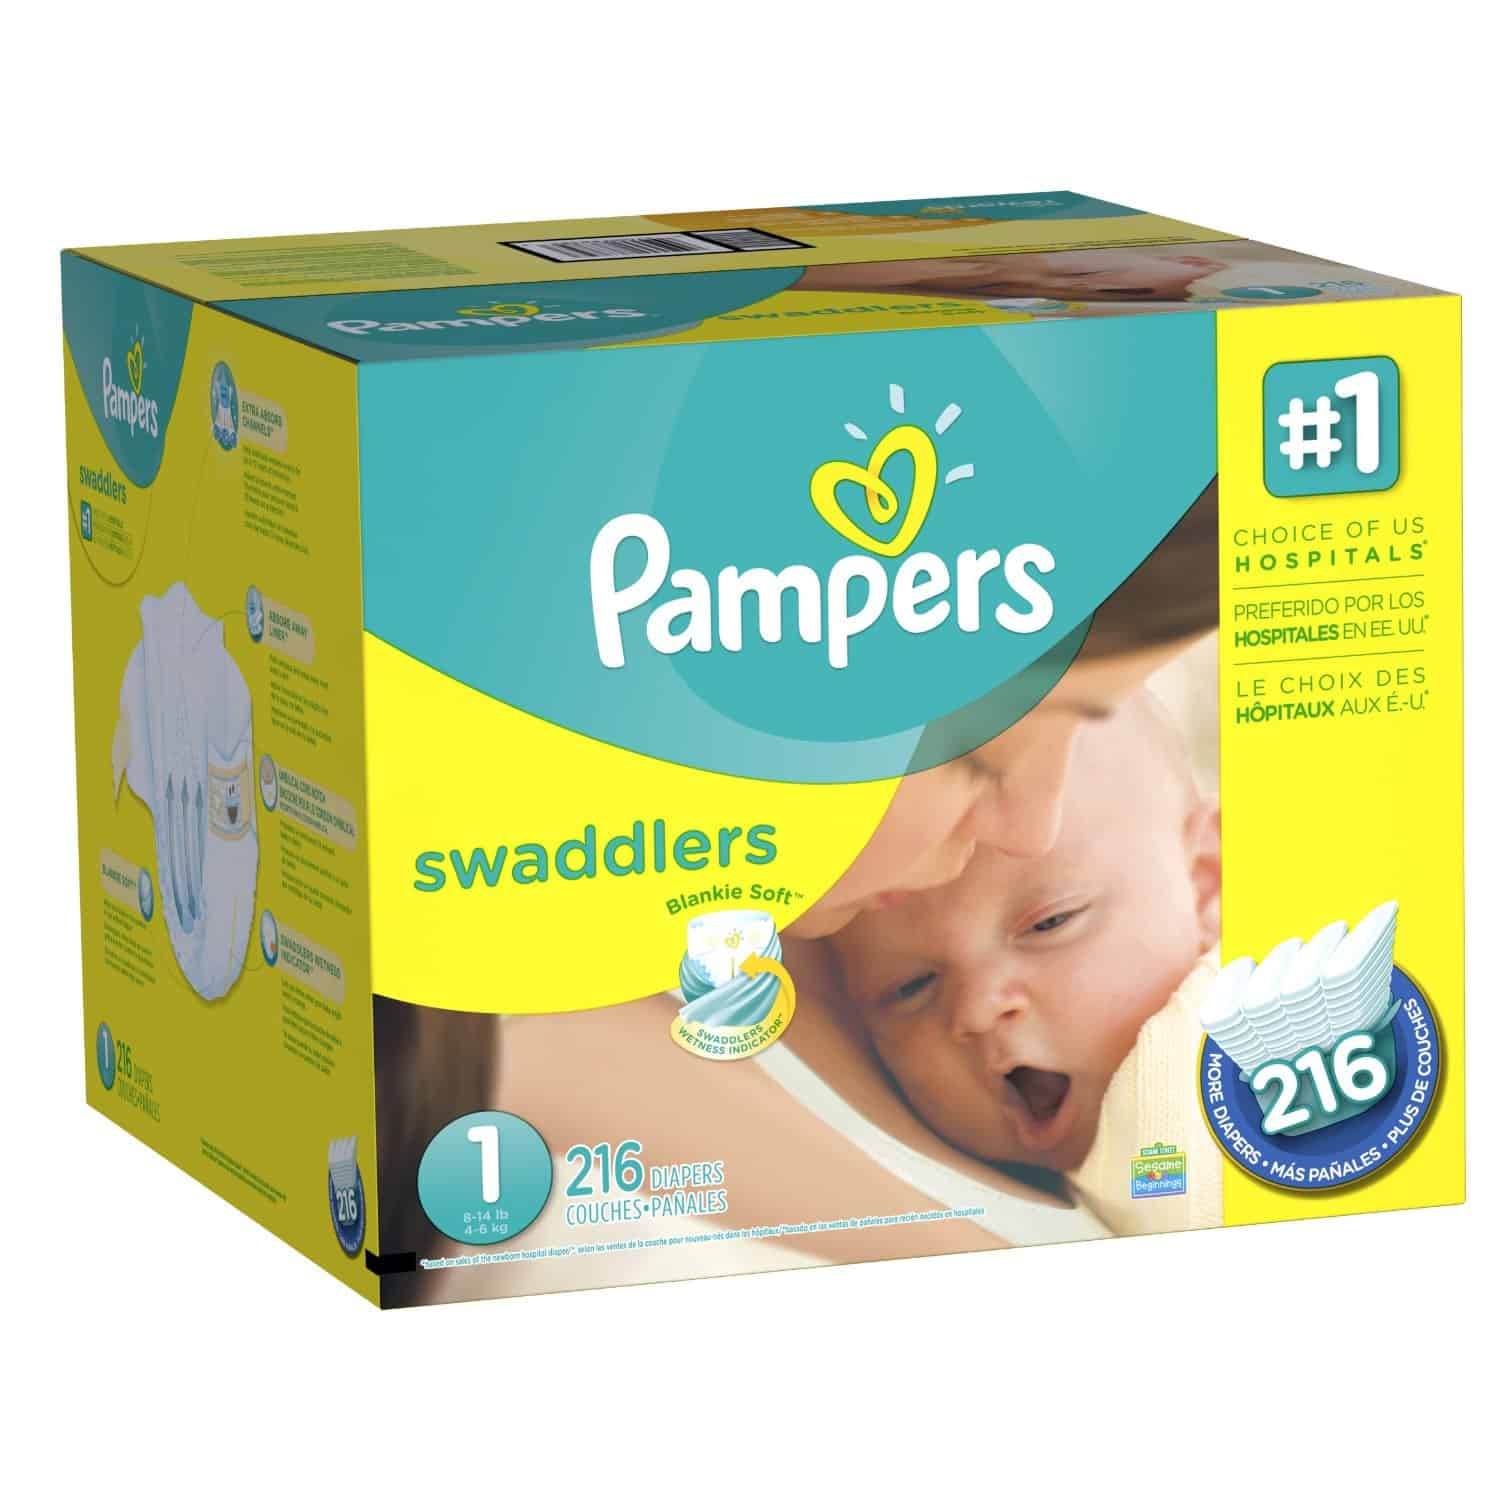 Pampers Swaddlers Diapers Wrap your baby in Pampers Swaddlers diapers, our most trusted comfort and protection choice. Our Blankie Soft diaper with a unique Absorb Away Liner pulls wetness and mess away from baby's skin to help keep your baby comfortable/5().